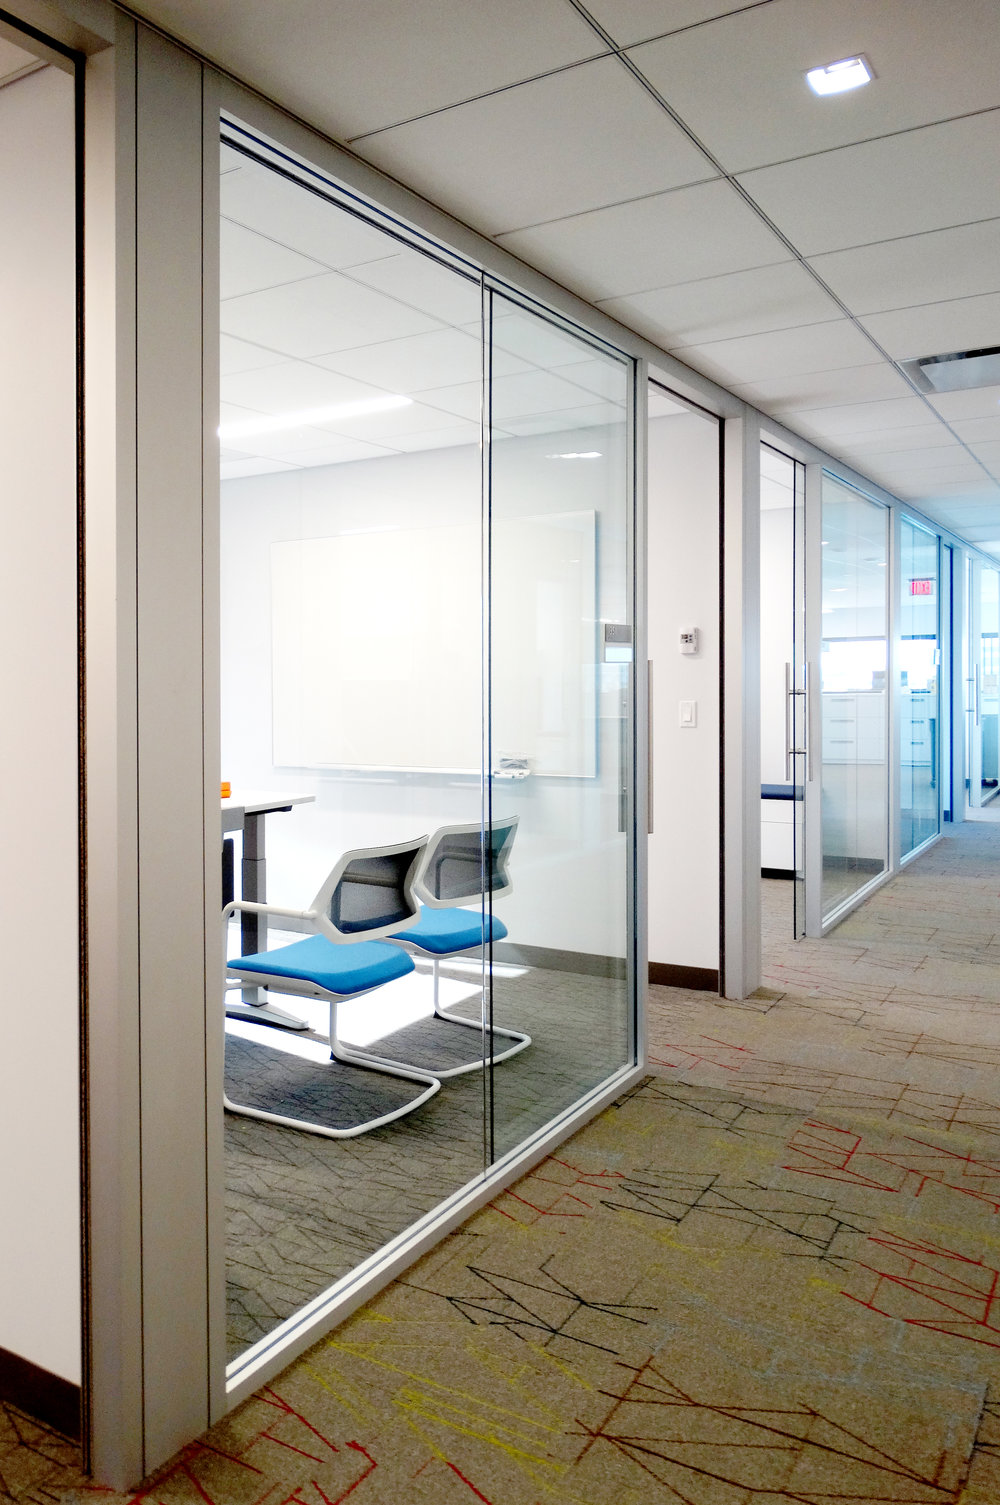 Litespace Demountable Glass Office Walls Sliding Door - Spaceworks AI.jpg